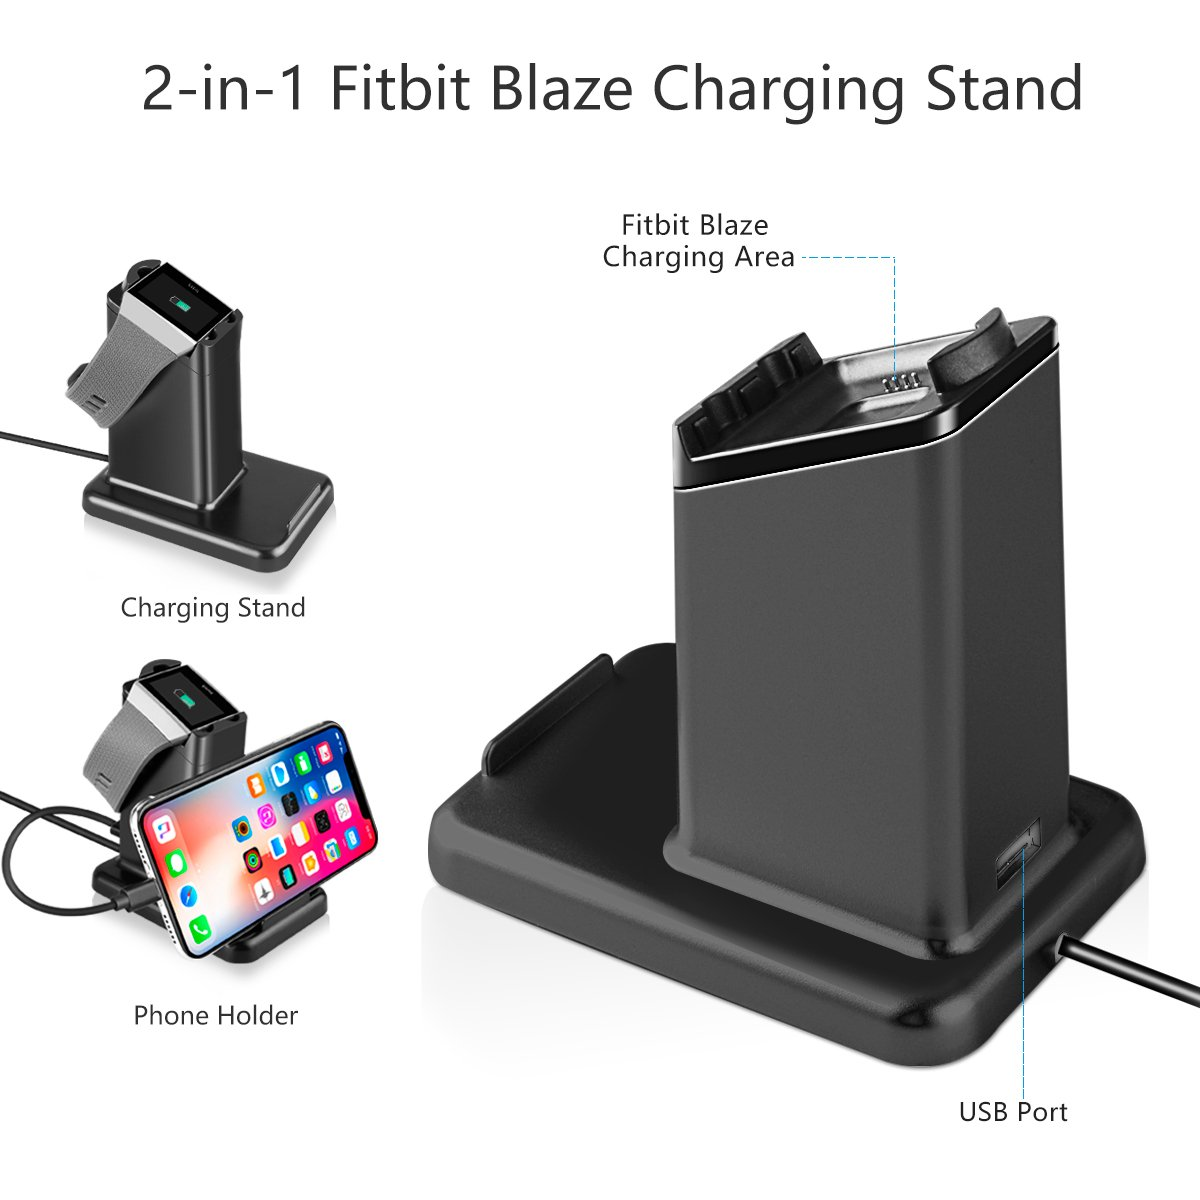 Fitbit Blaze Charger, MixMart Smart Watch Mobile Phone Tablet Charging Station for Fitbit Blaze and Universal Smart Phones and Tablets (Blk)